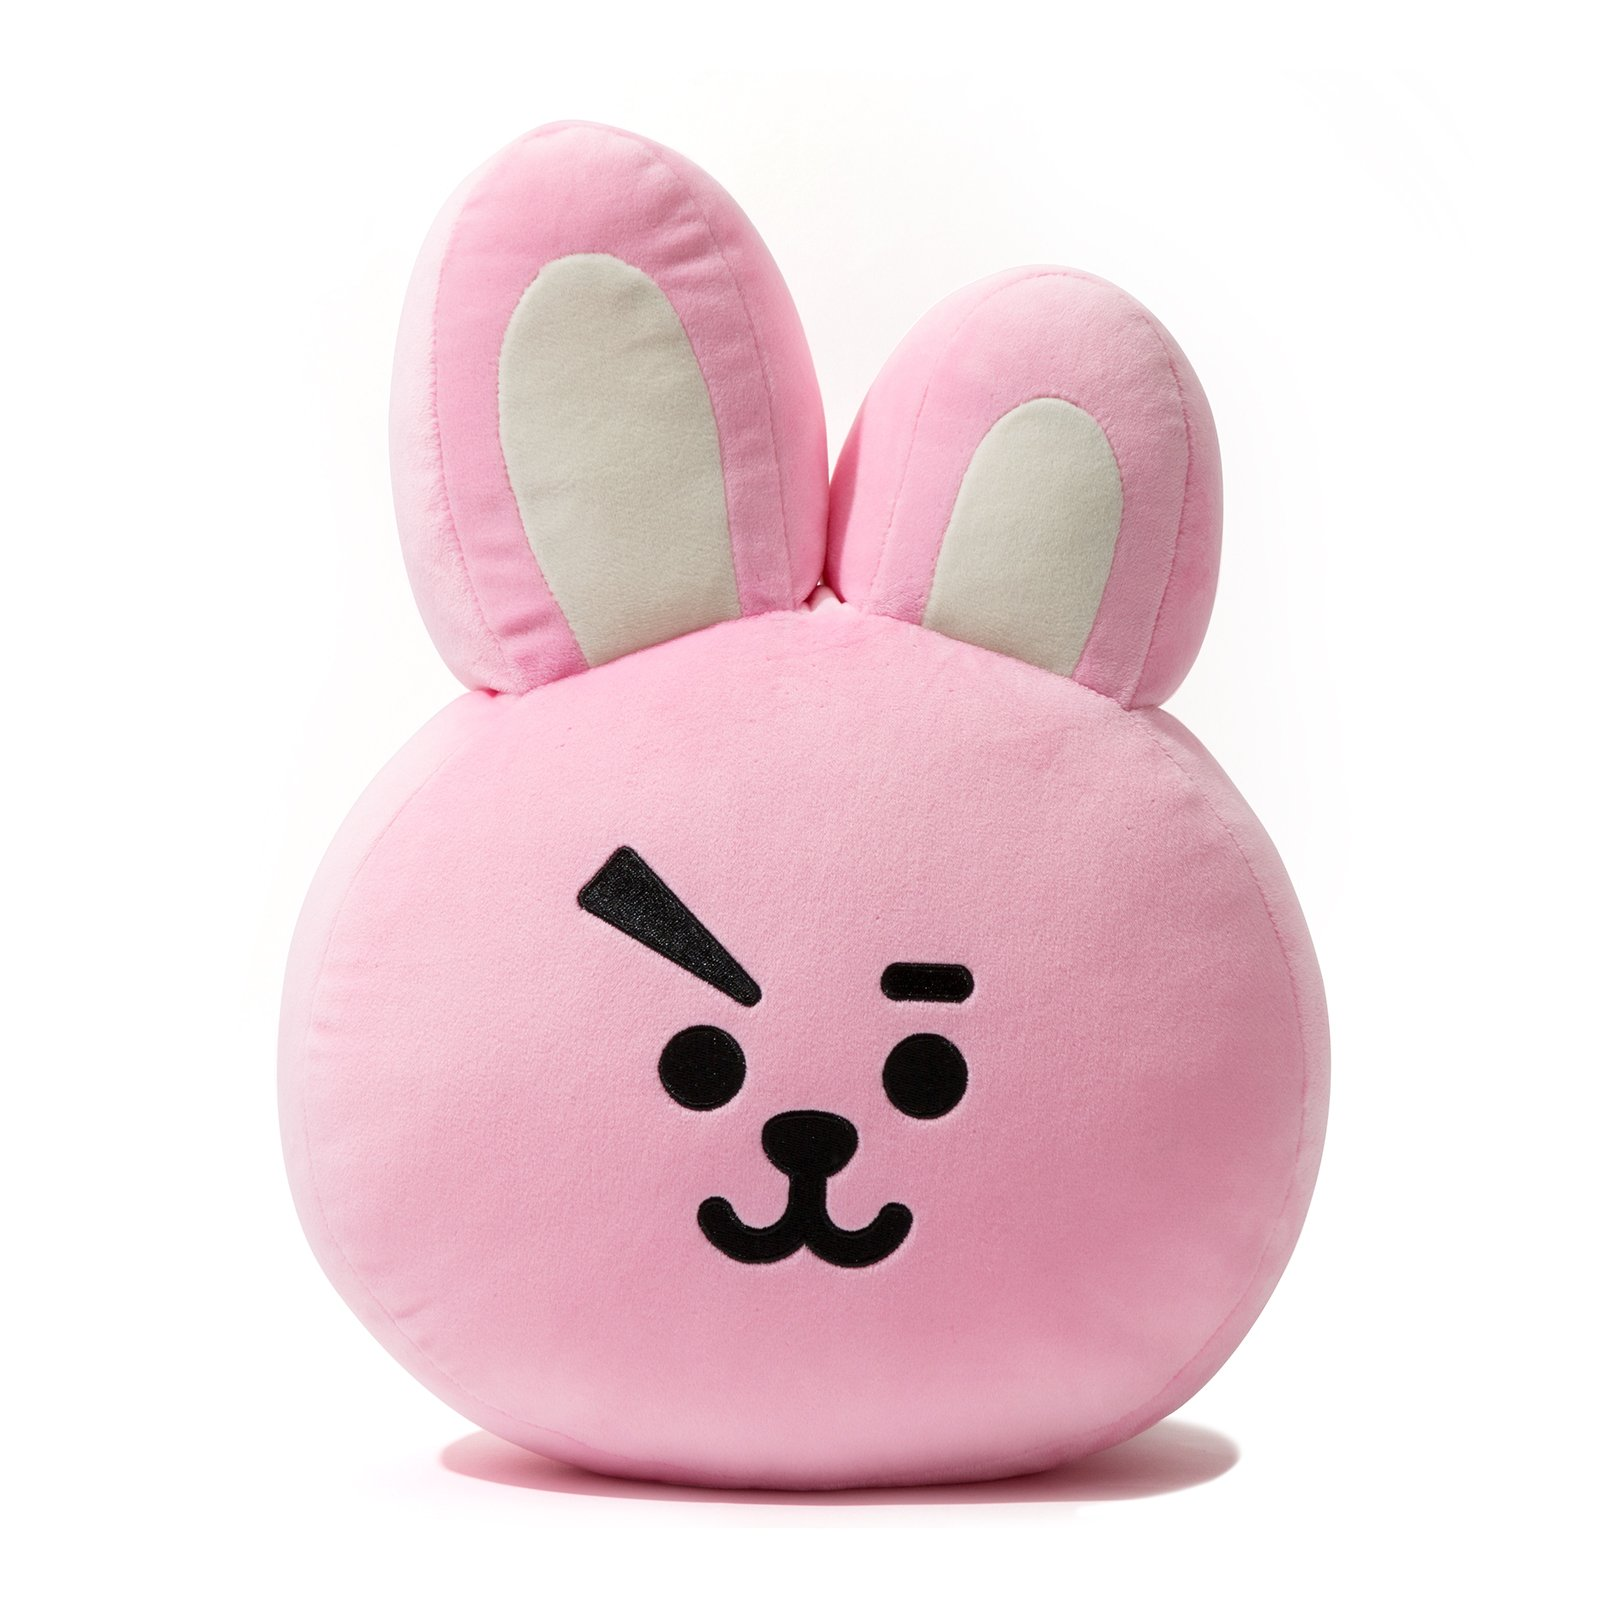 BT21 Official Merchandise by Line Friends - Cooky Decorative Throw Pillows Cushion, 16.5 Inch by BT21